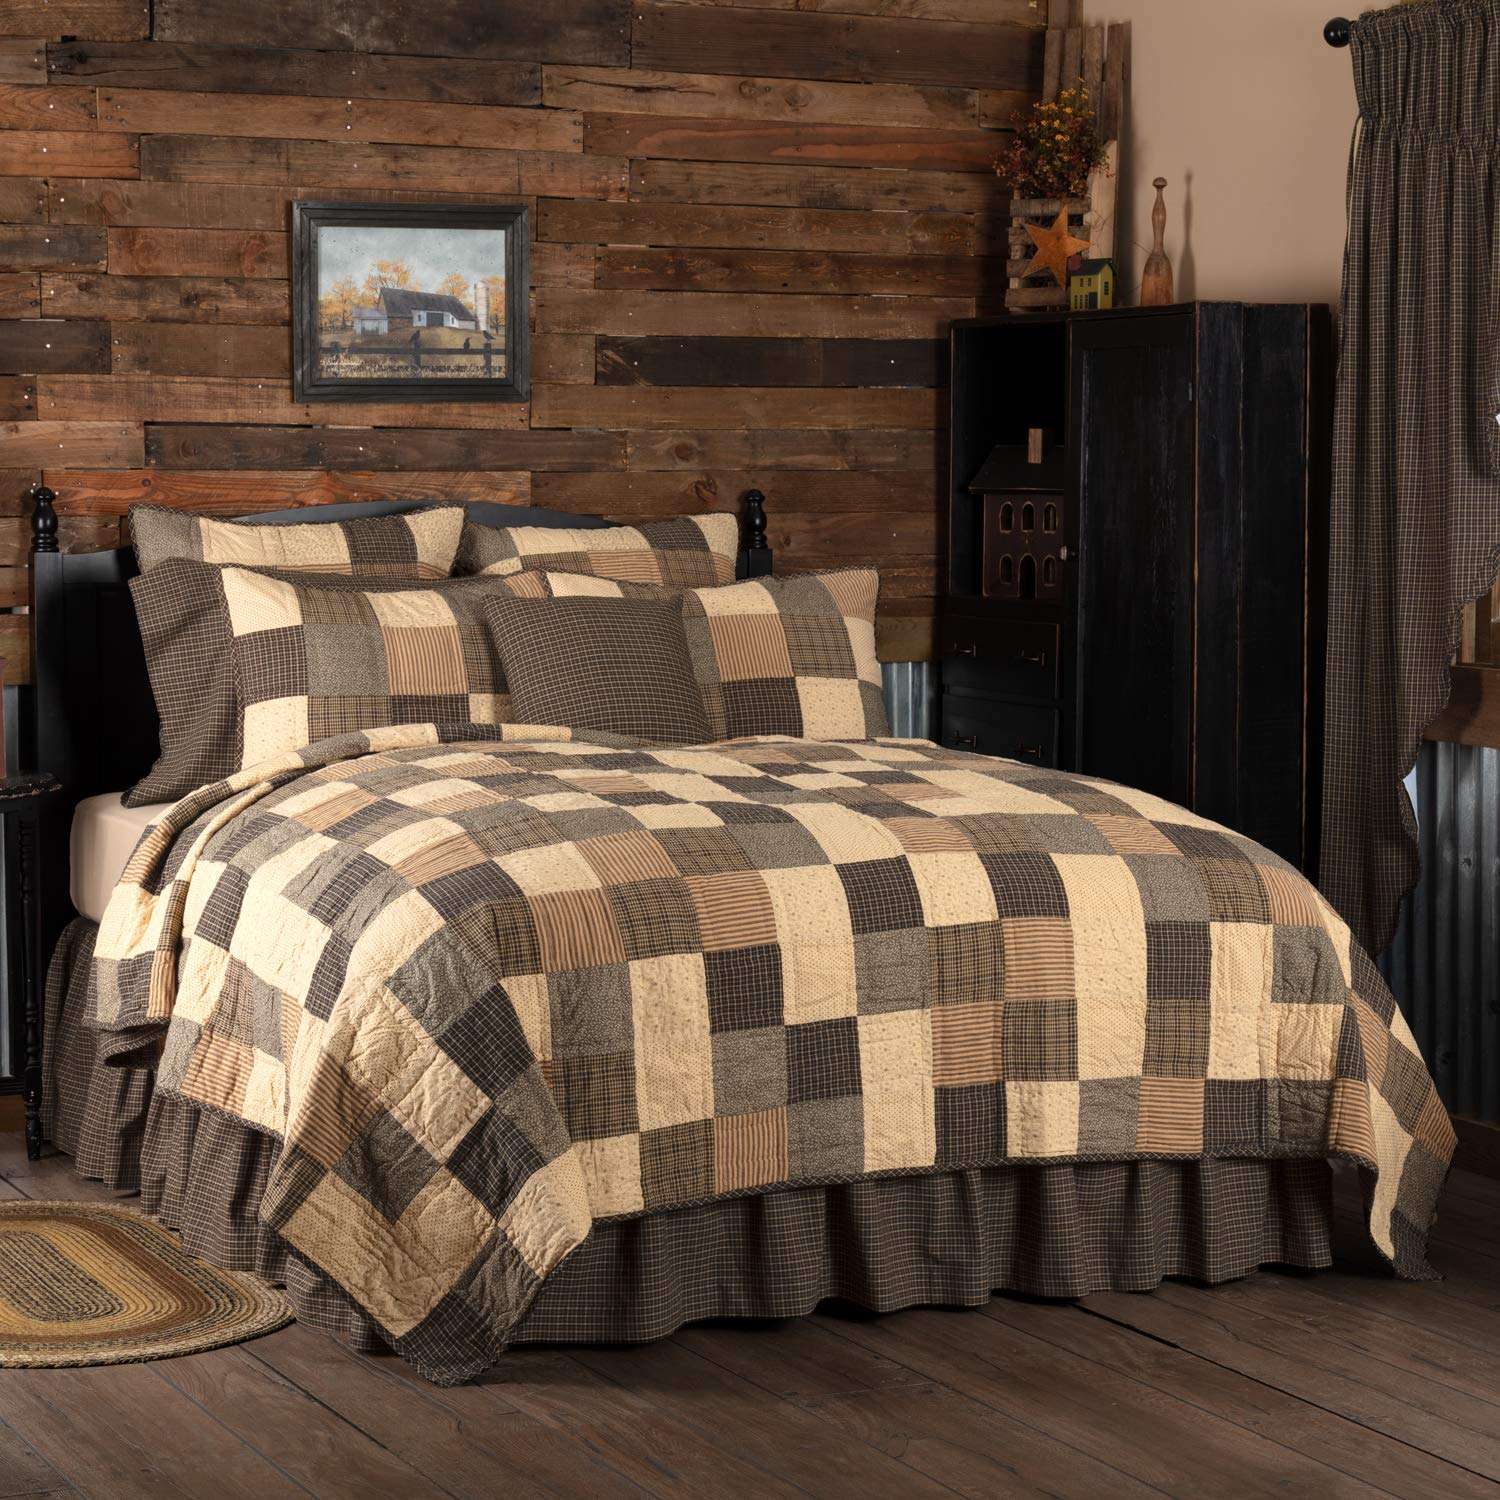 Country Black VHC Brands Primitive Bedding Prim Grove Cotton Pre-Washed California King Quilt